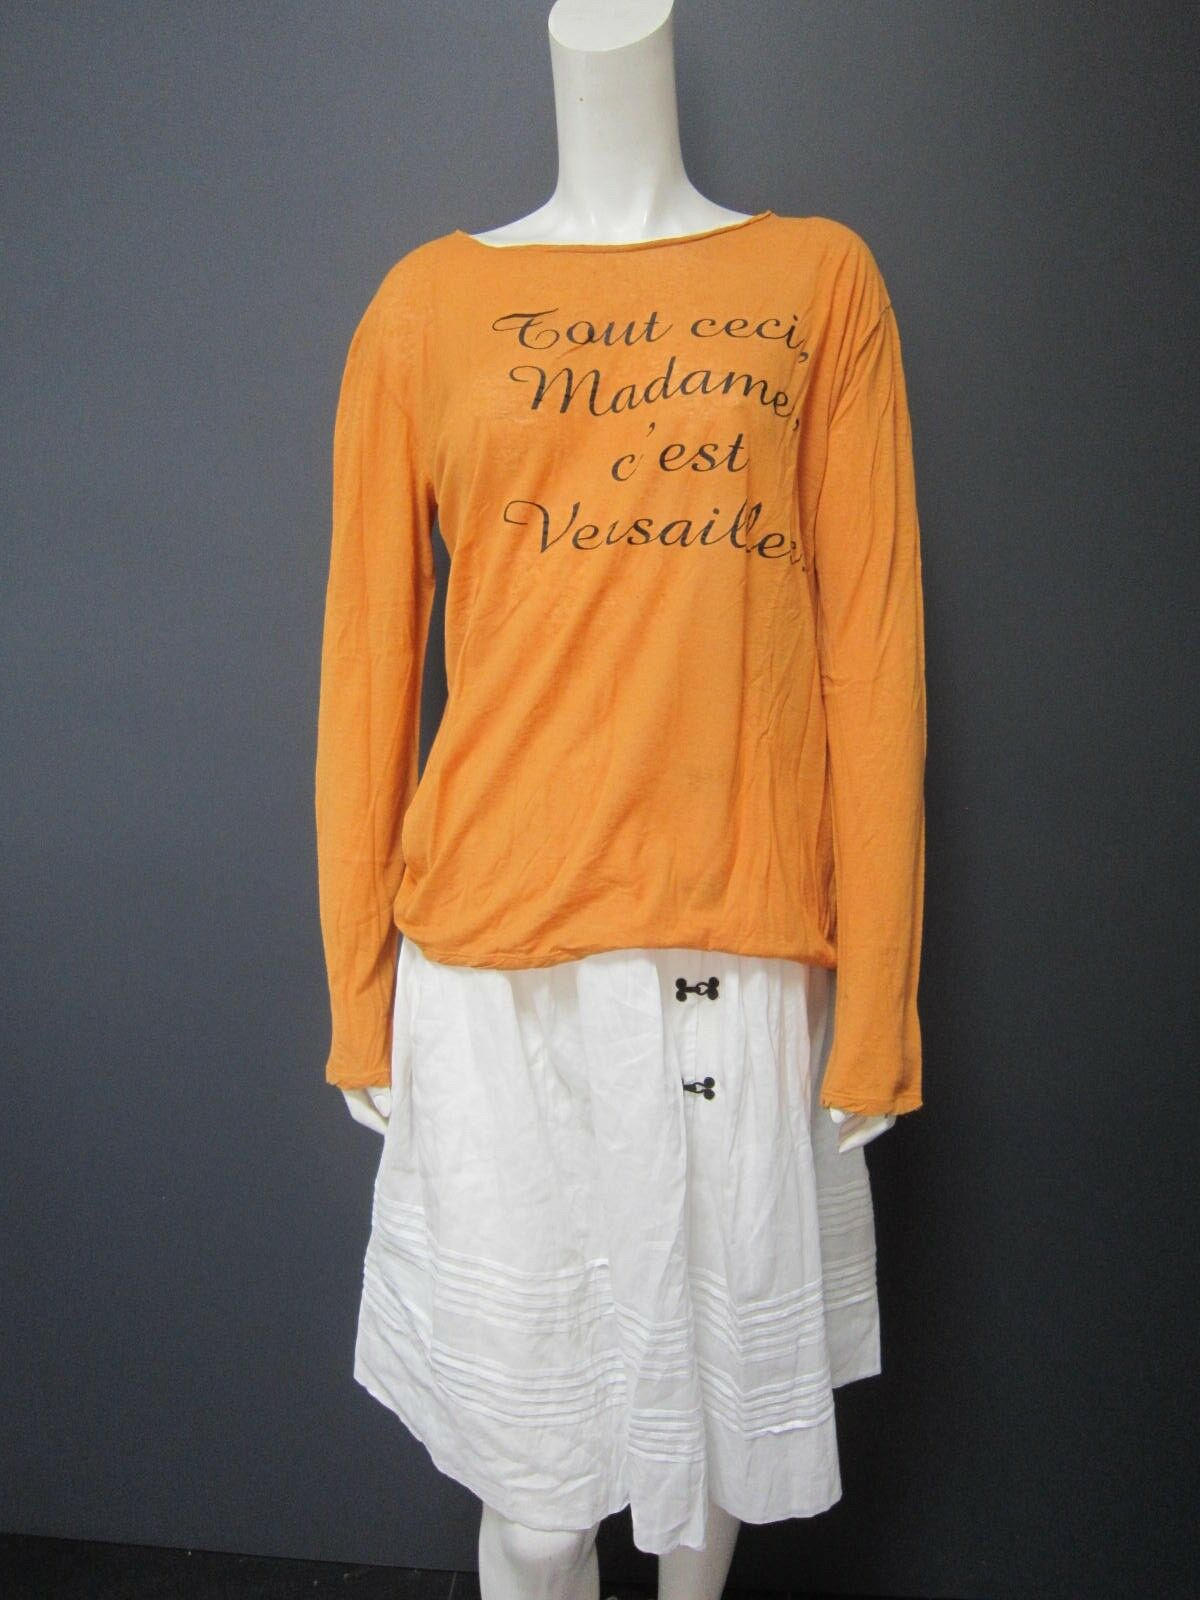 MOMONI cotton & linen thin t shirt NEW   Größe L   Orange with schwarz text